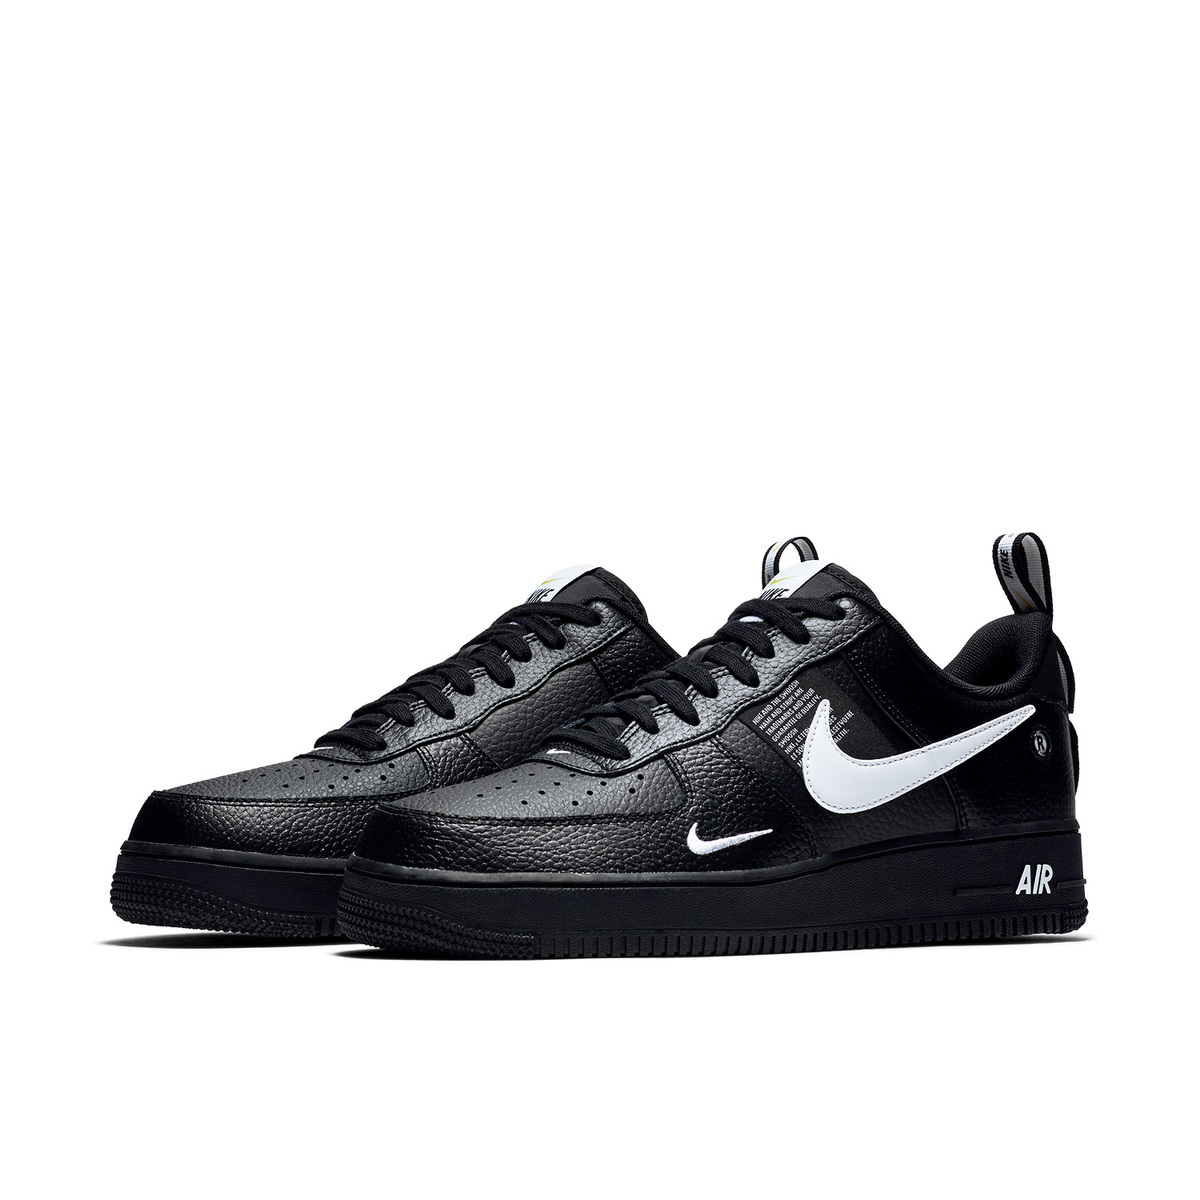 US $81.27 57% OFF|Nike Air Force 1 Original Leather Men's Skateboarding Shoes Comfortable Outdoor Sports Sneakers #AJ7747 in Skateboarding from Sports